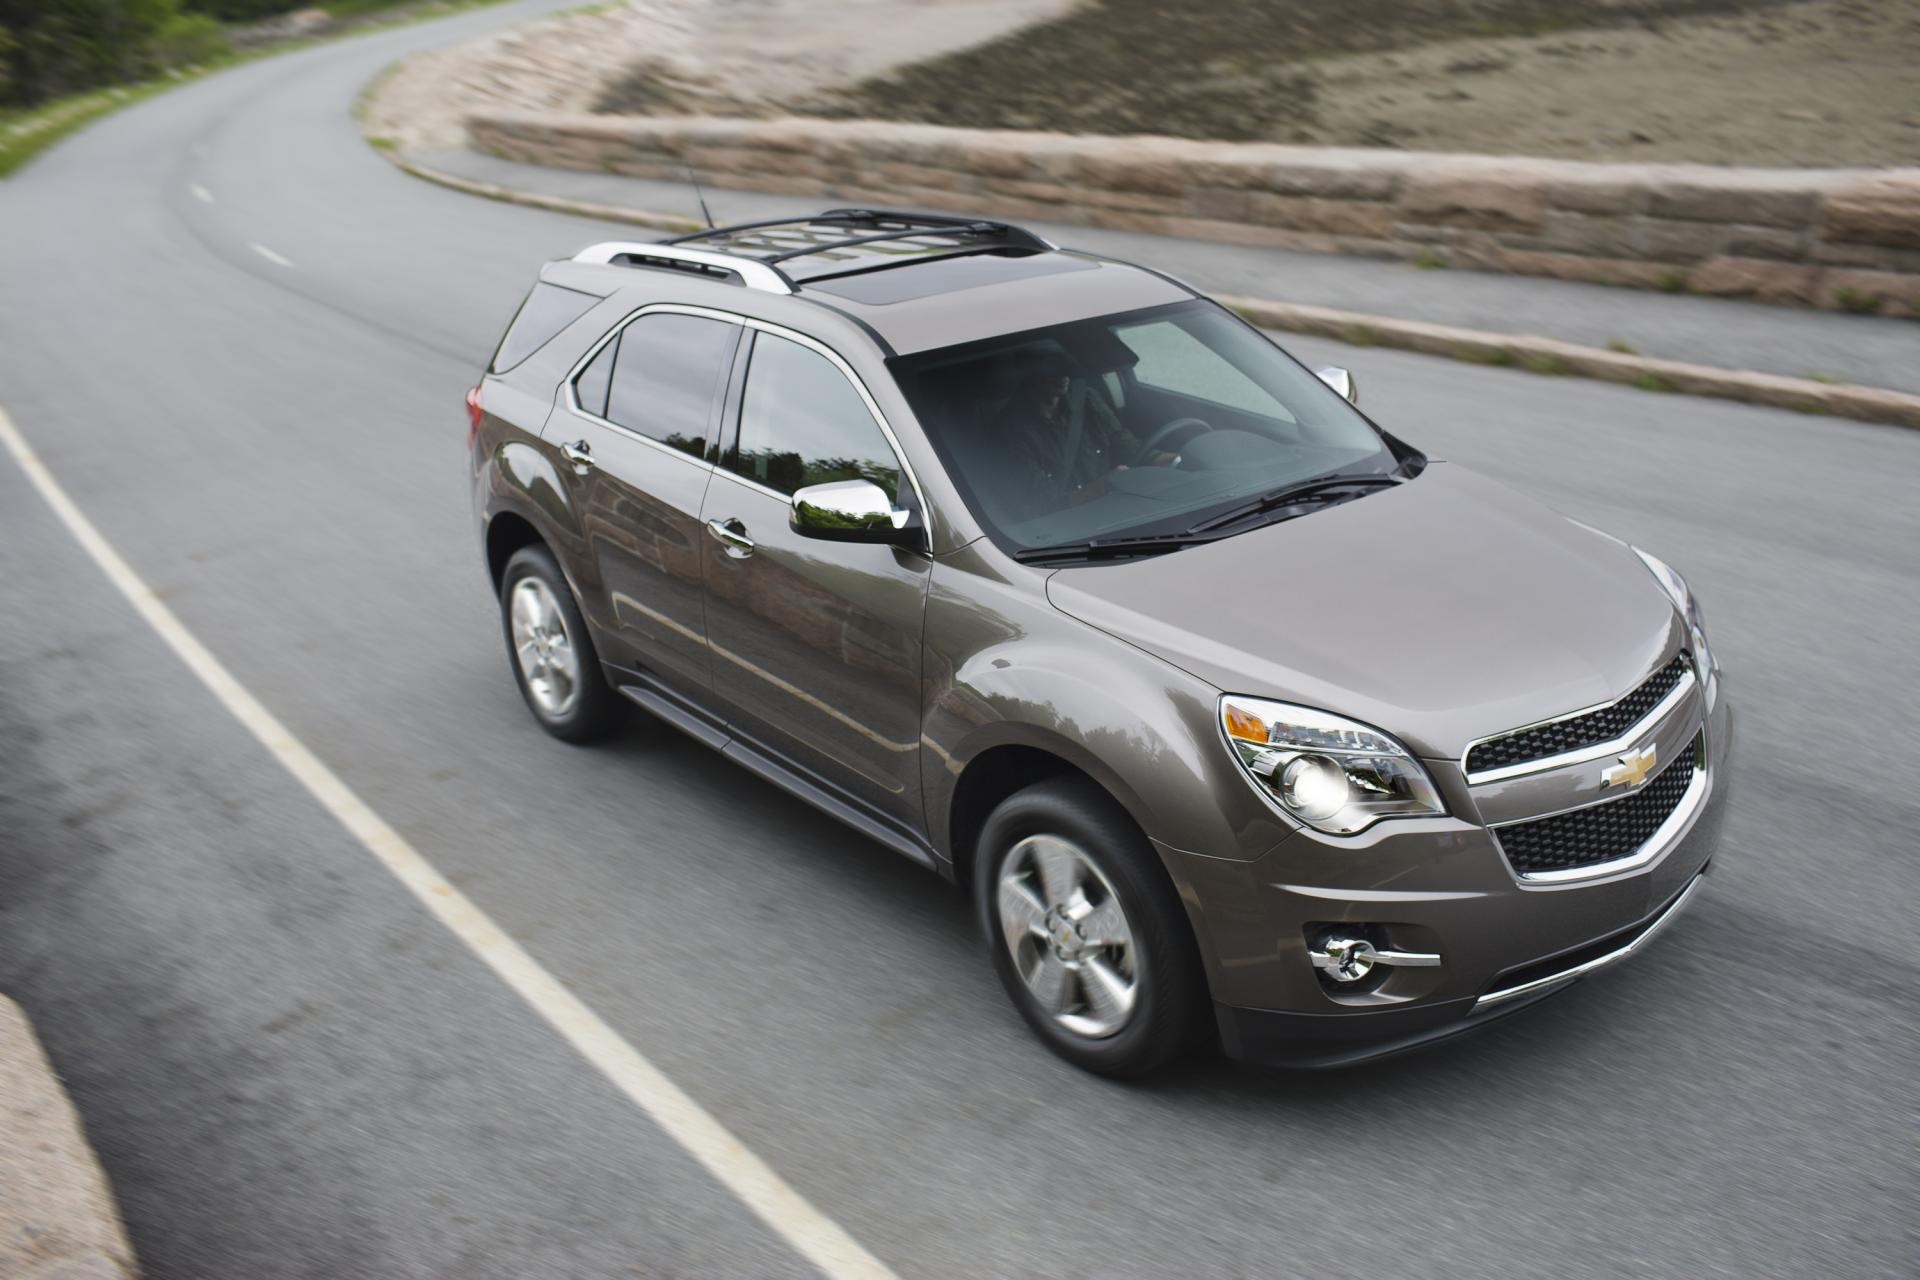 2012 Chevrolet Equinox News and Information